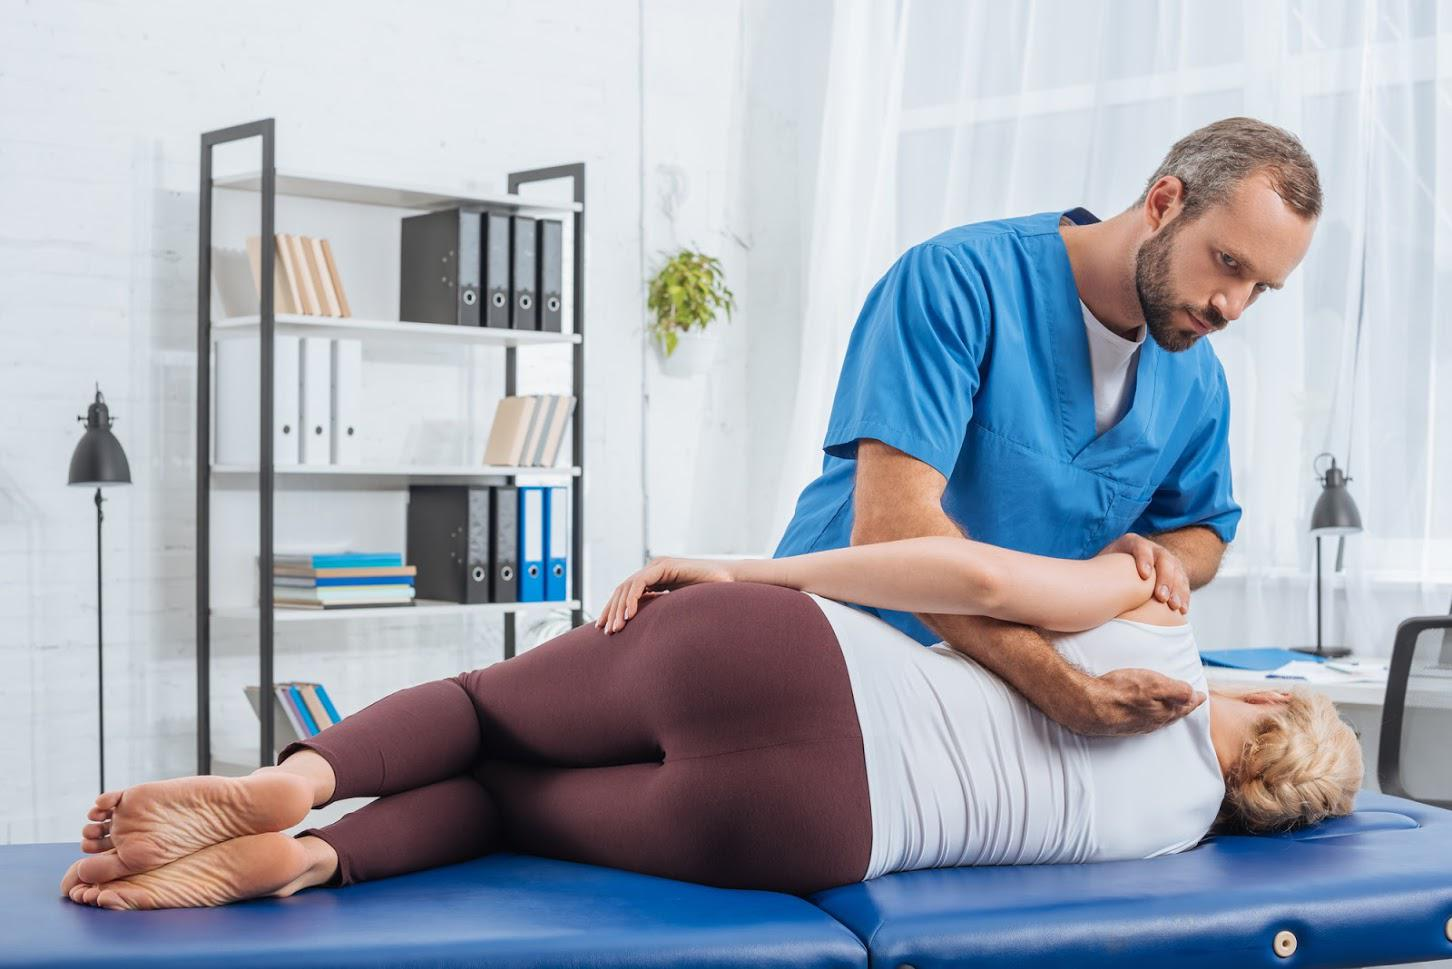 The Dos and Don'ts of Successful Physical Therapy Treatment